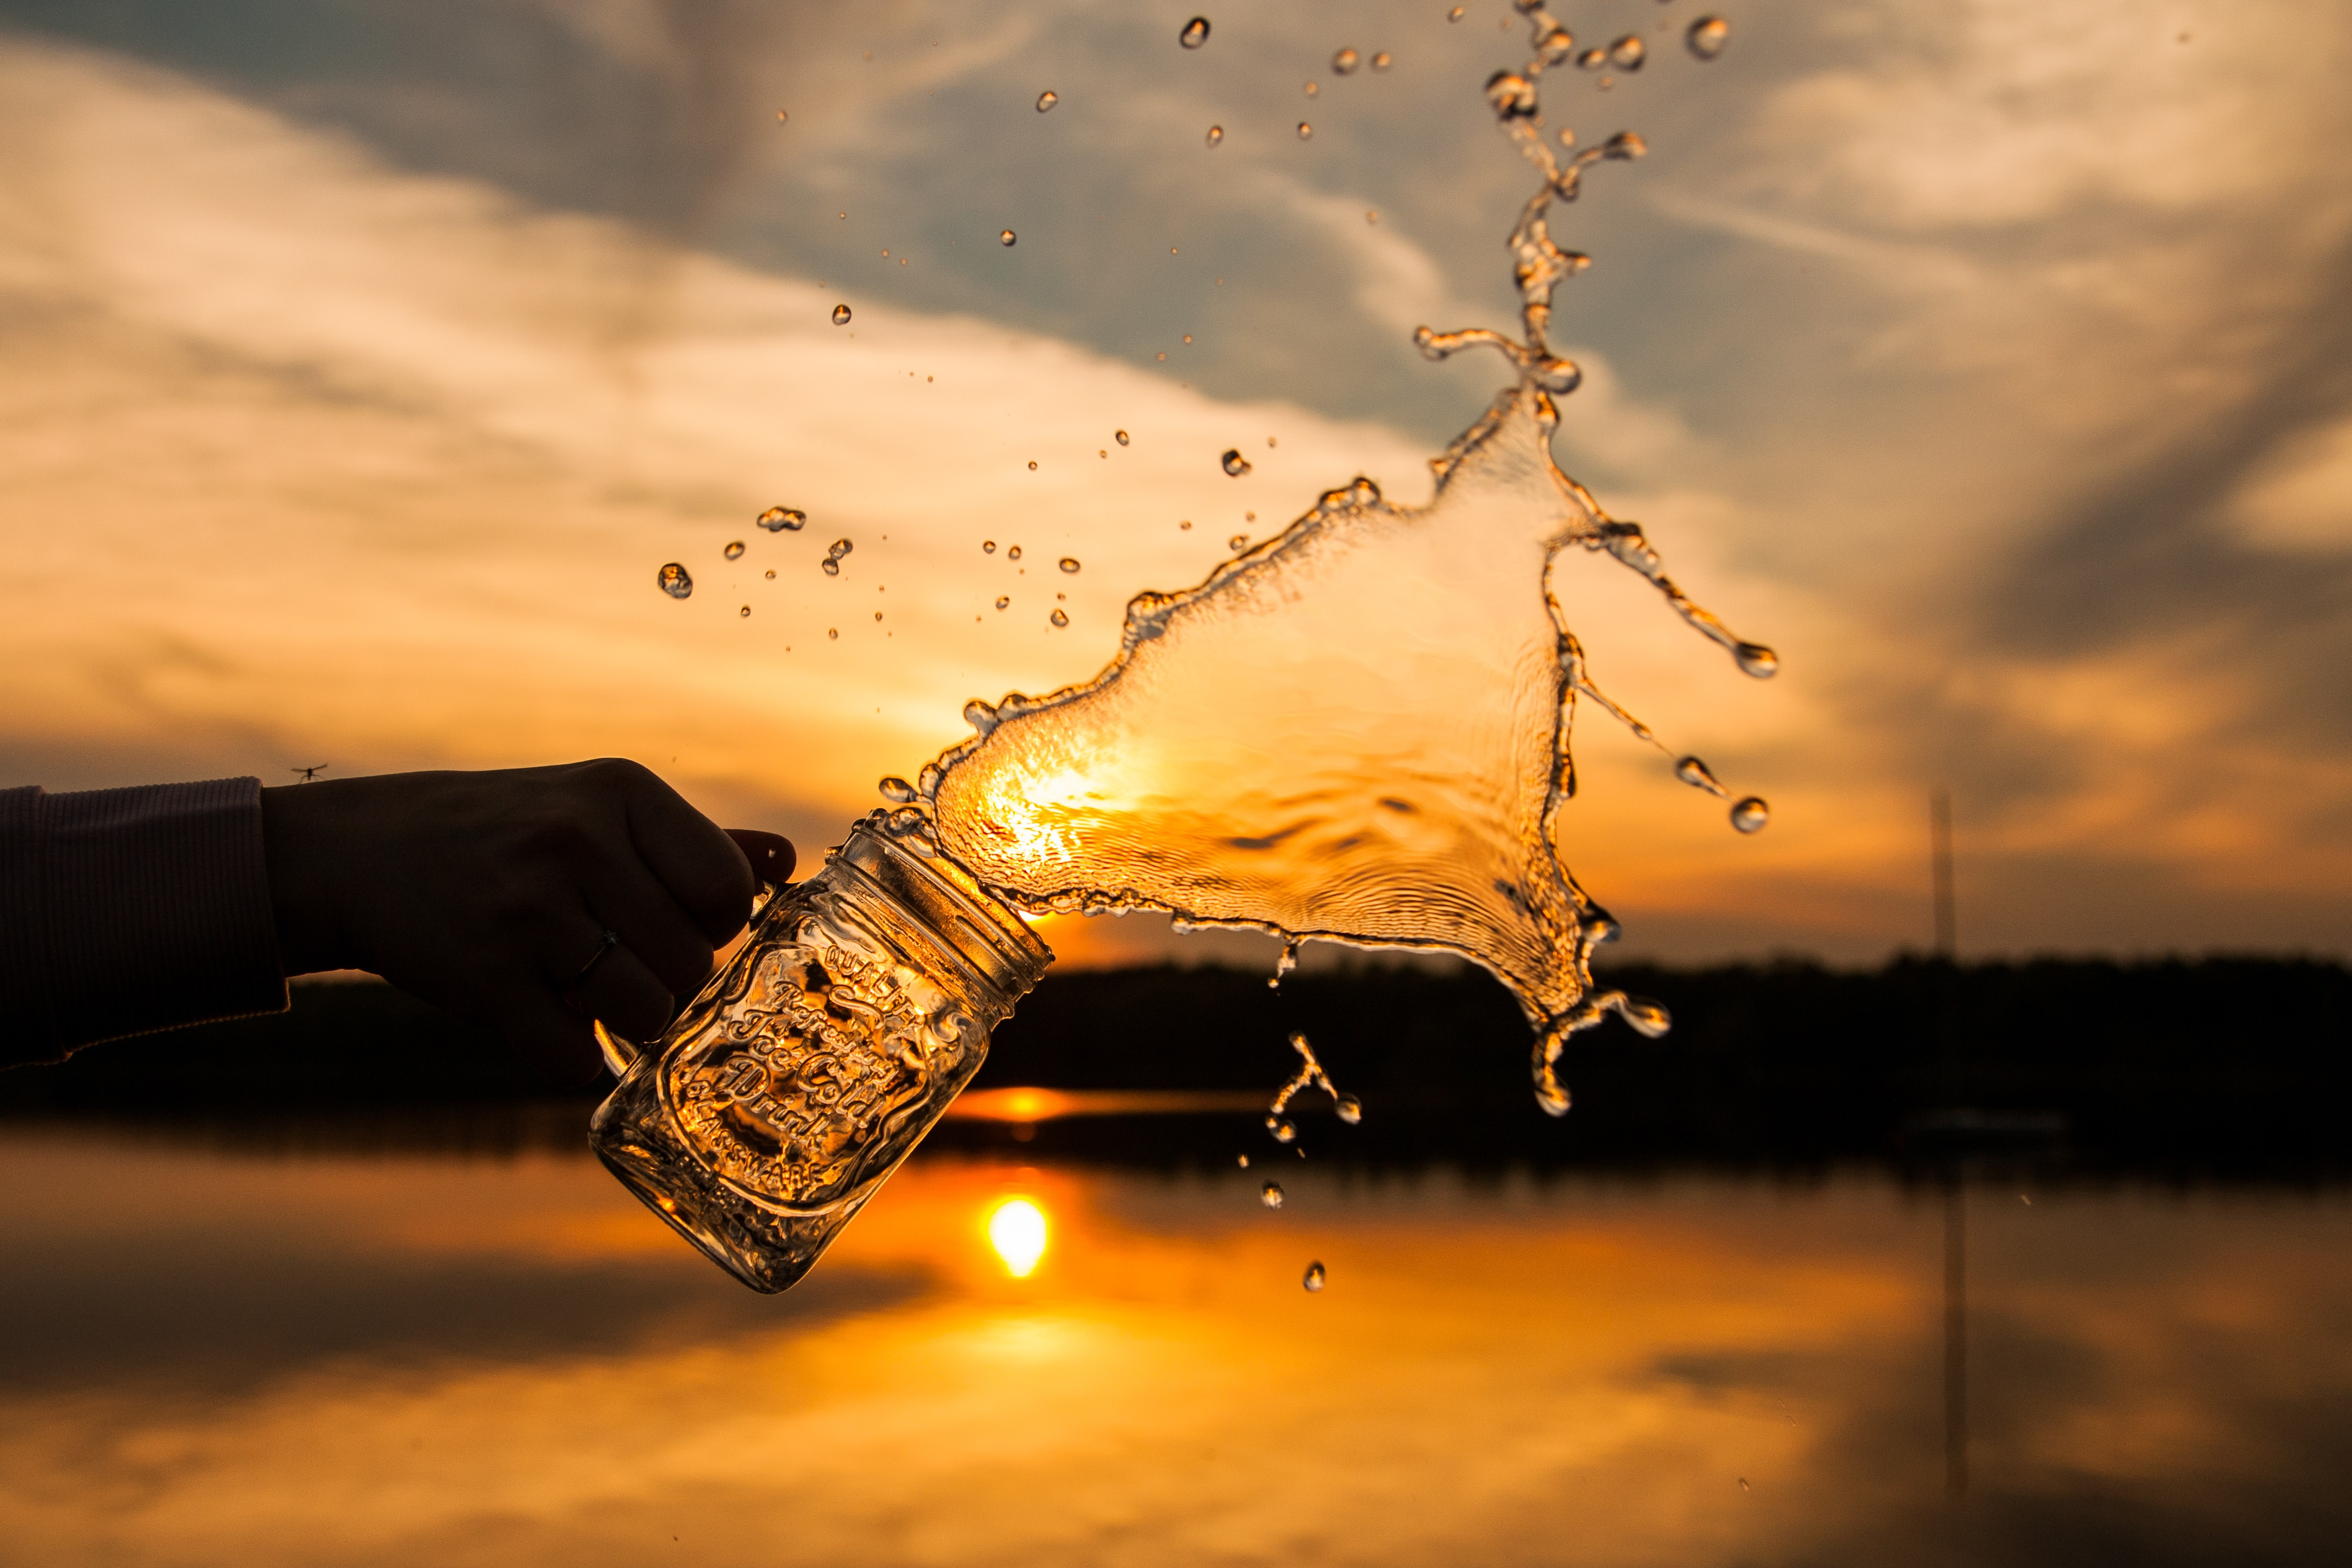 Water being splashed out of a mason jar with a sunset backdrop